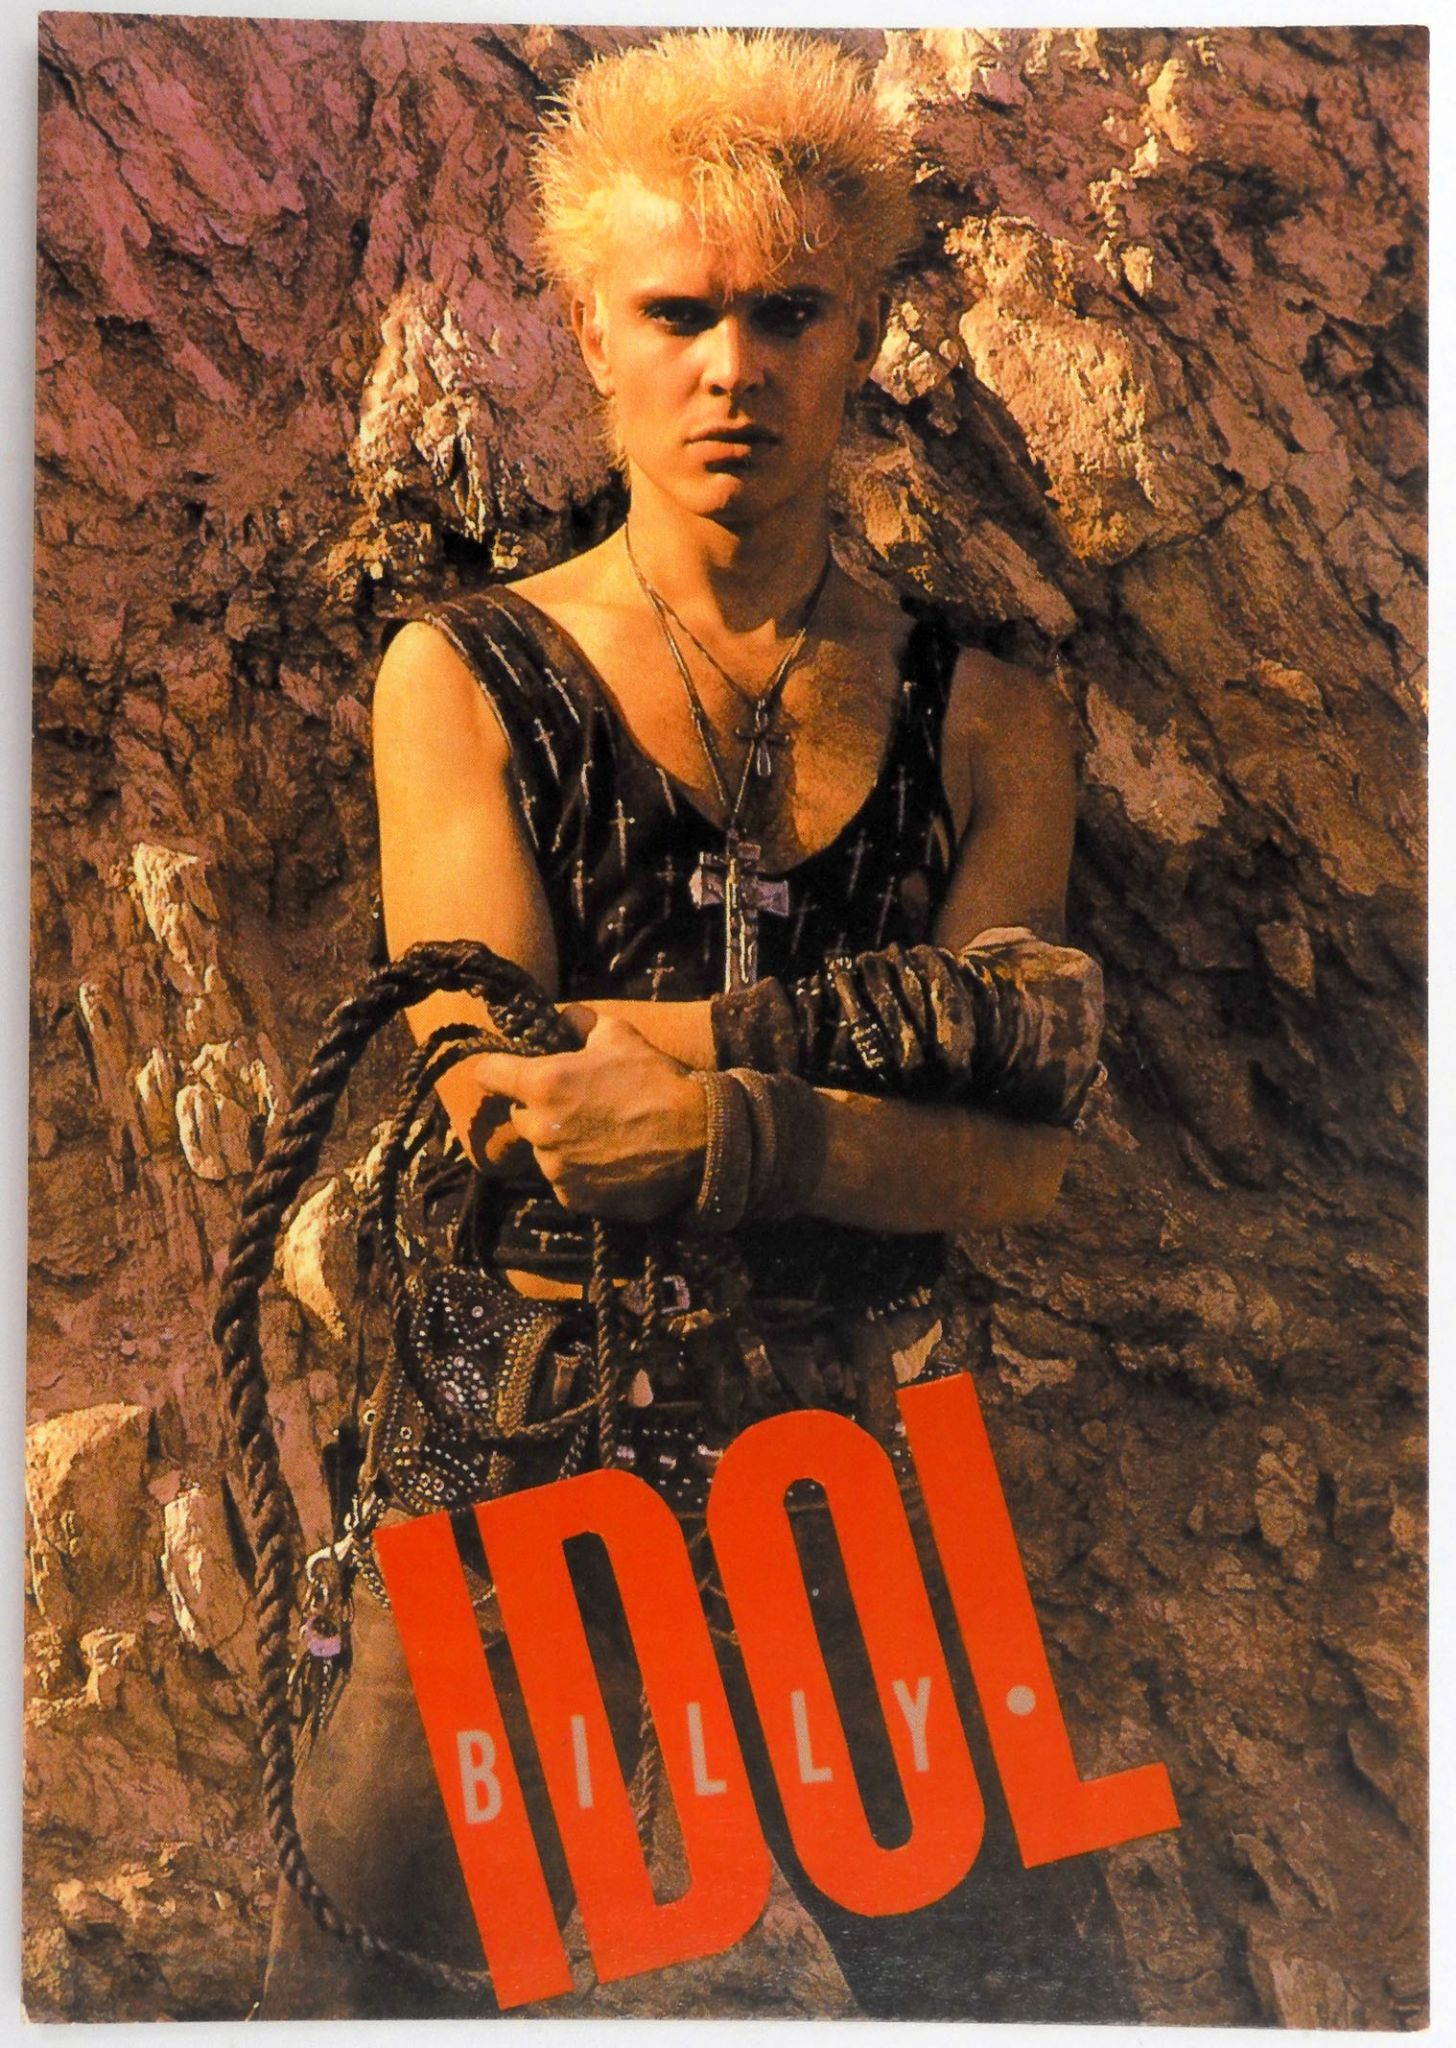 8a6a3d4300a89 Billy Idol - 'Billy with Whip' Postcard